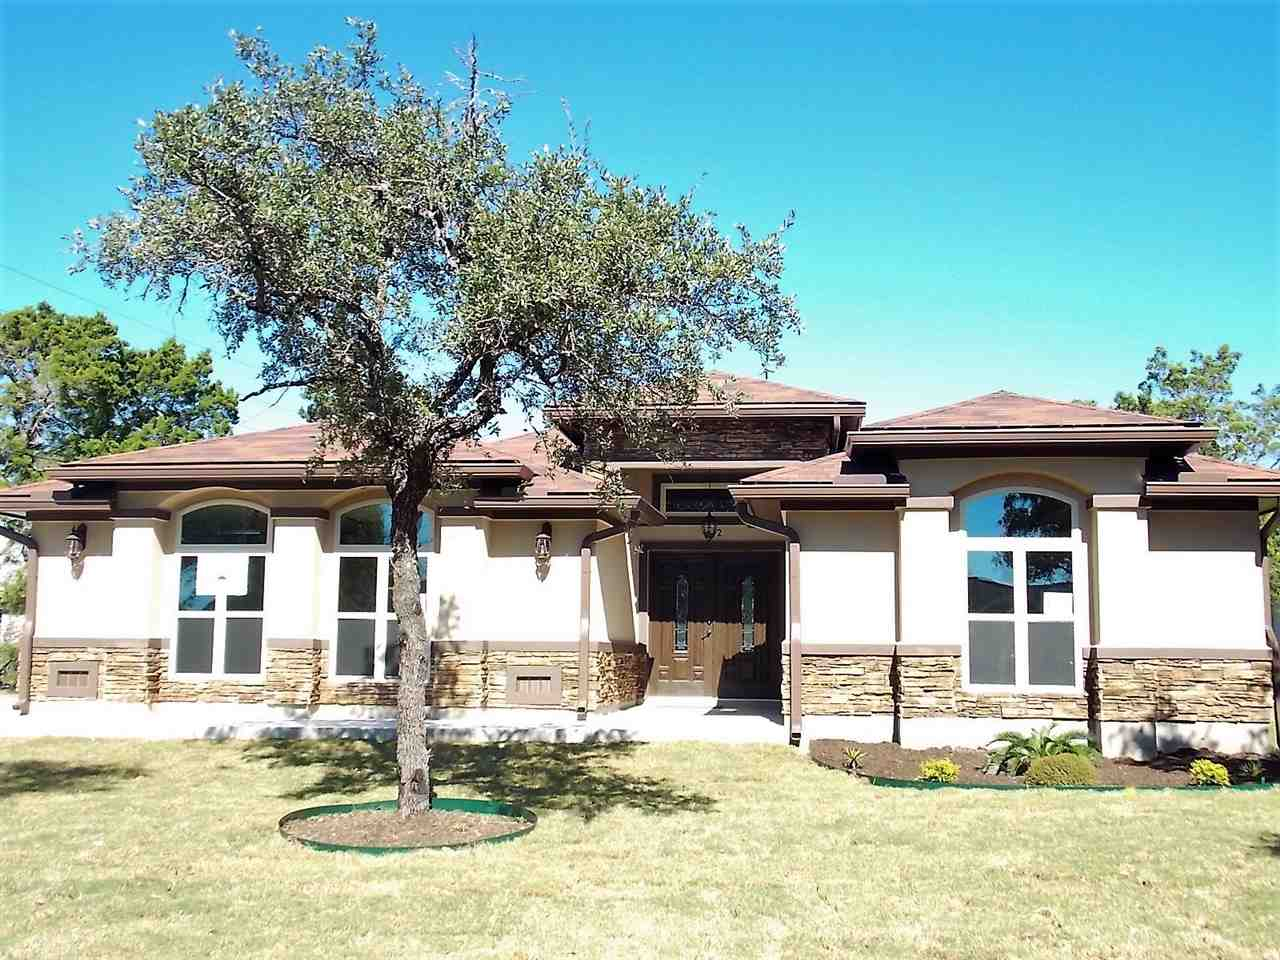 Casa Unifamiliar por un Venta en 212 Knights Row Views 212 Knights Row Views Cottonwood Shores, Texas 78657 Estados Unidos